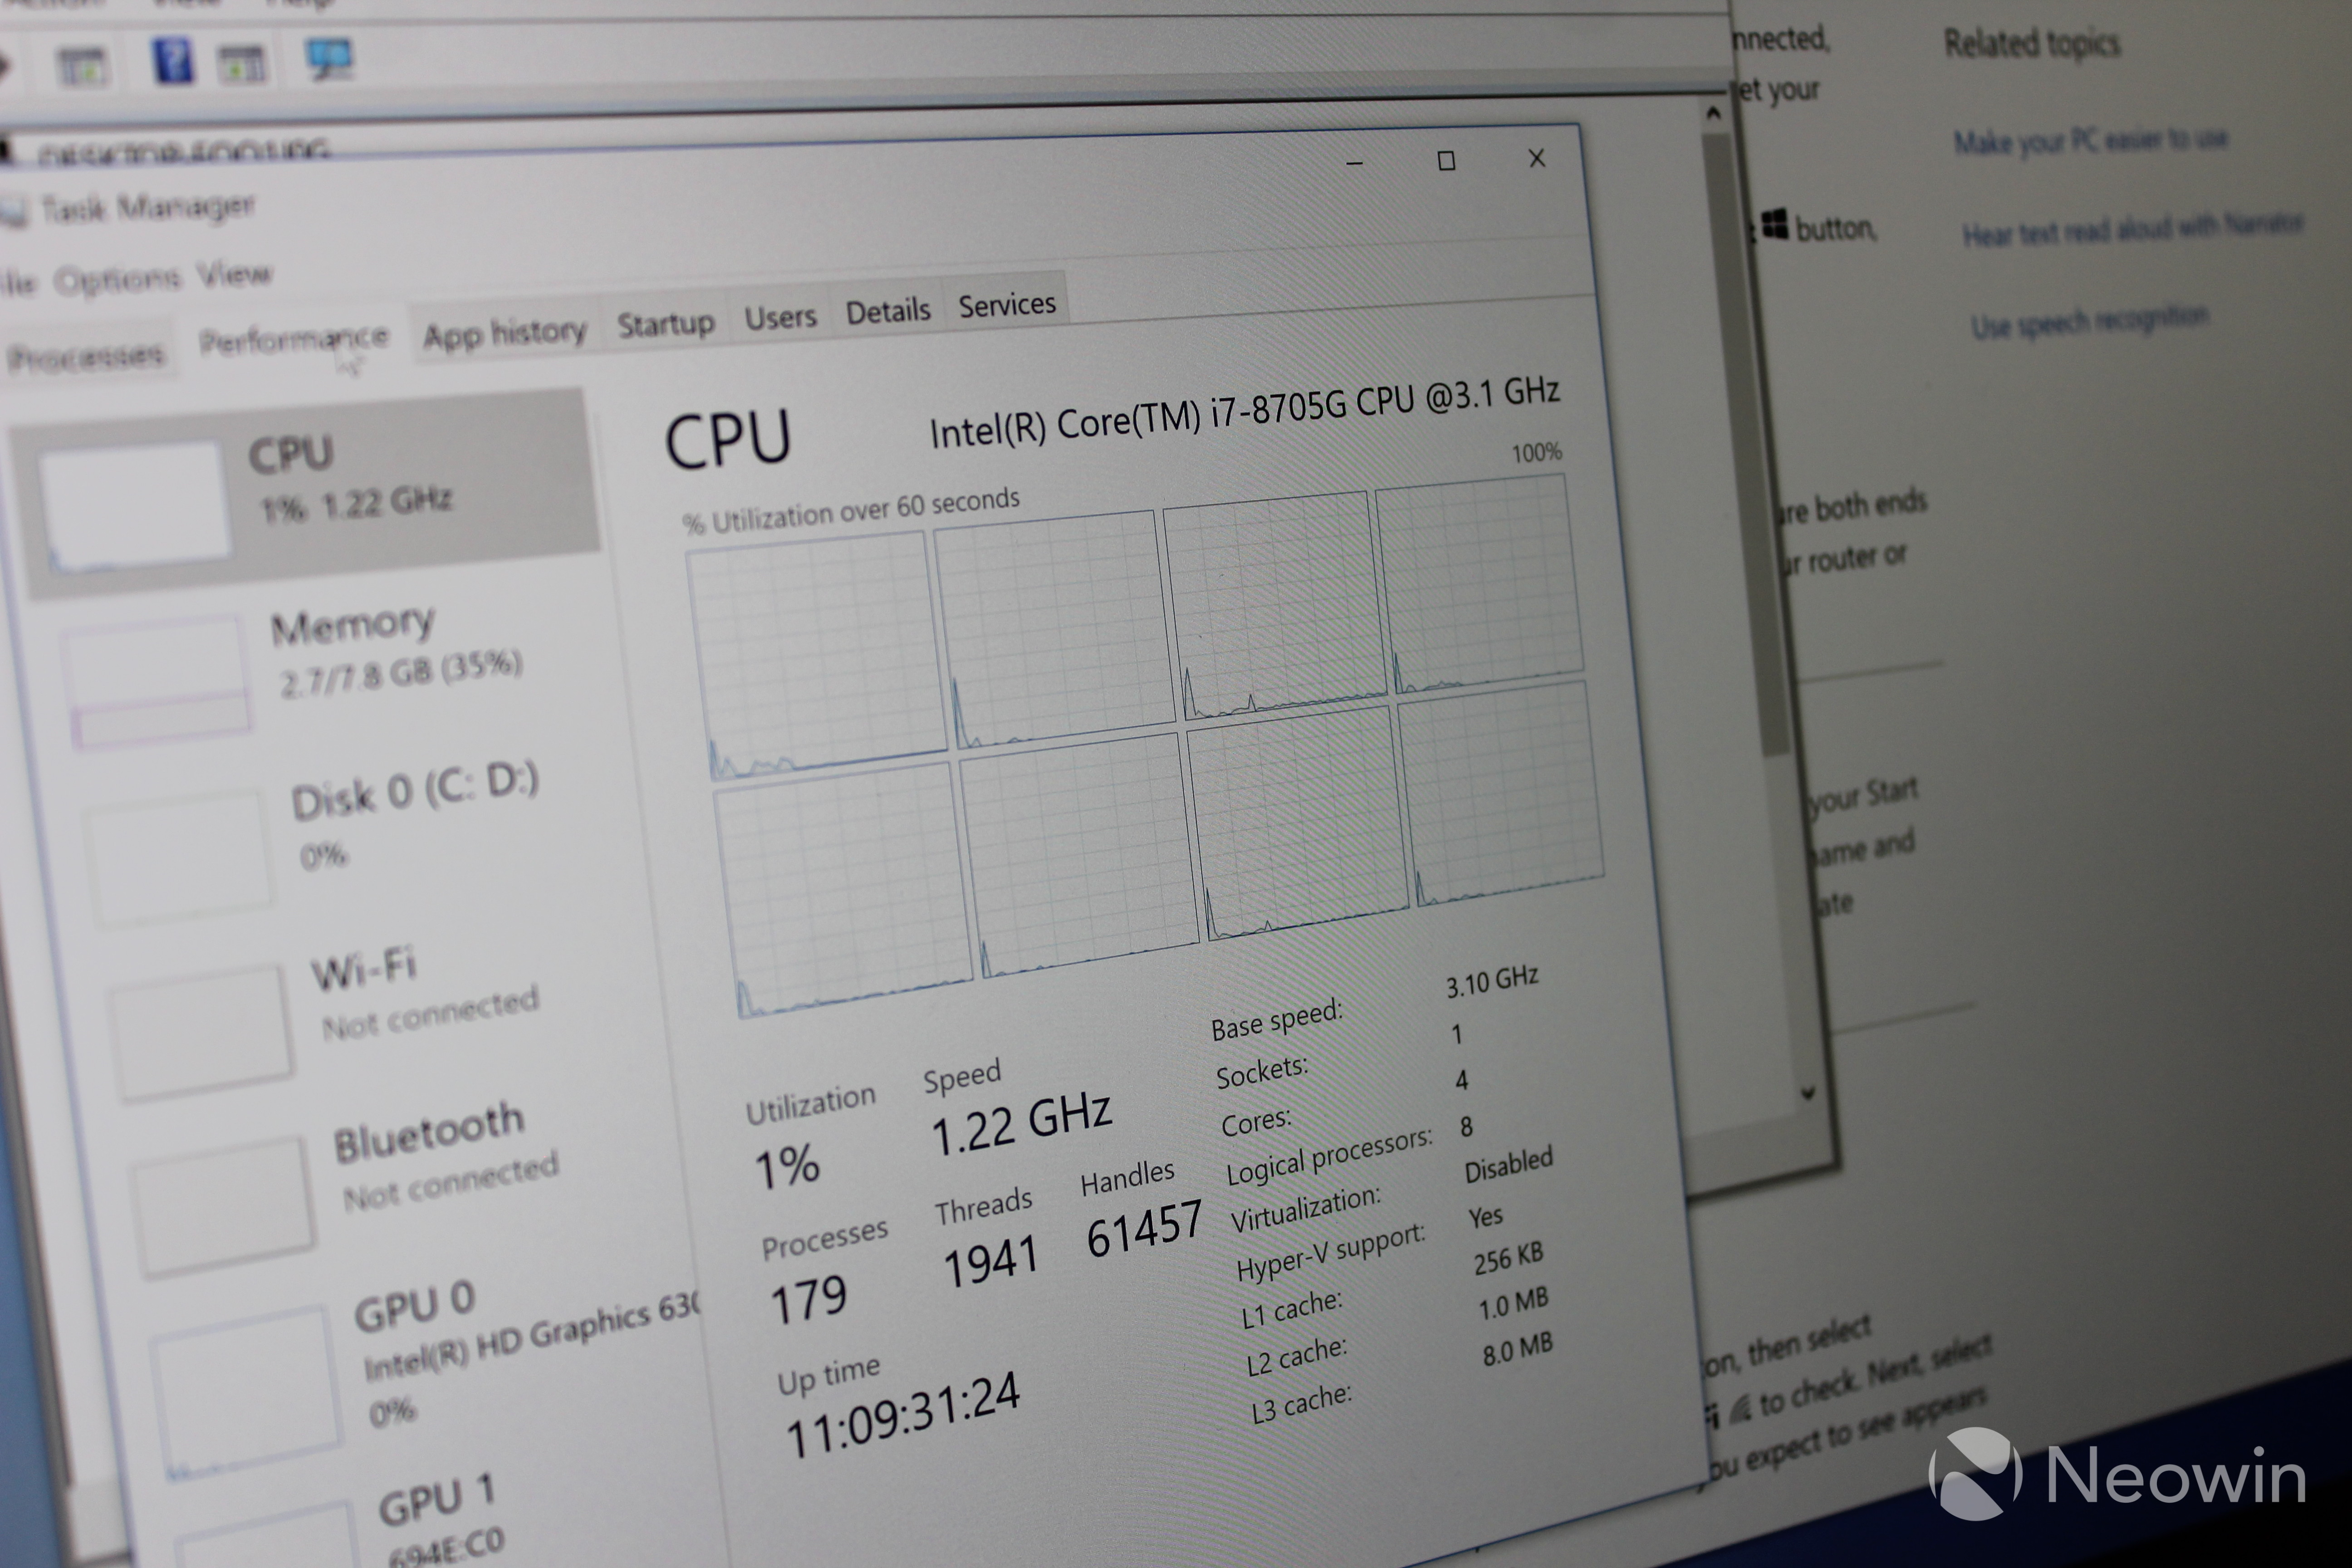 HP refreshes its Spectre 15 x360 with a big performance boost - Neowin